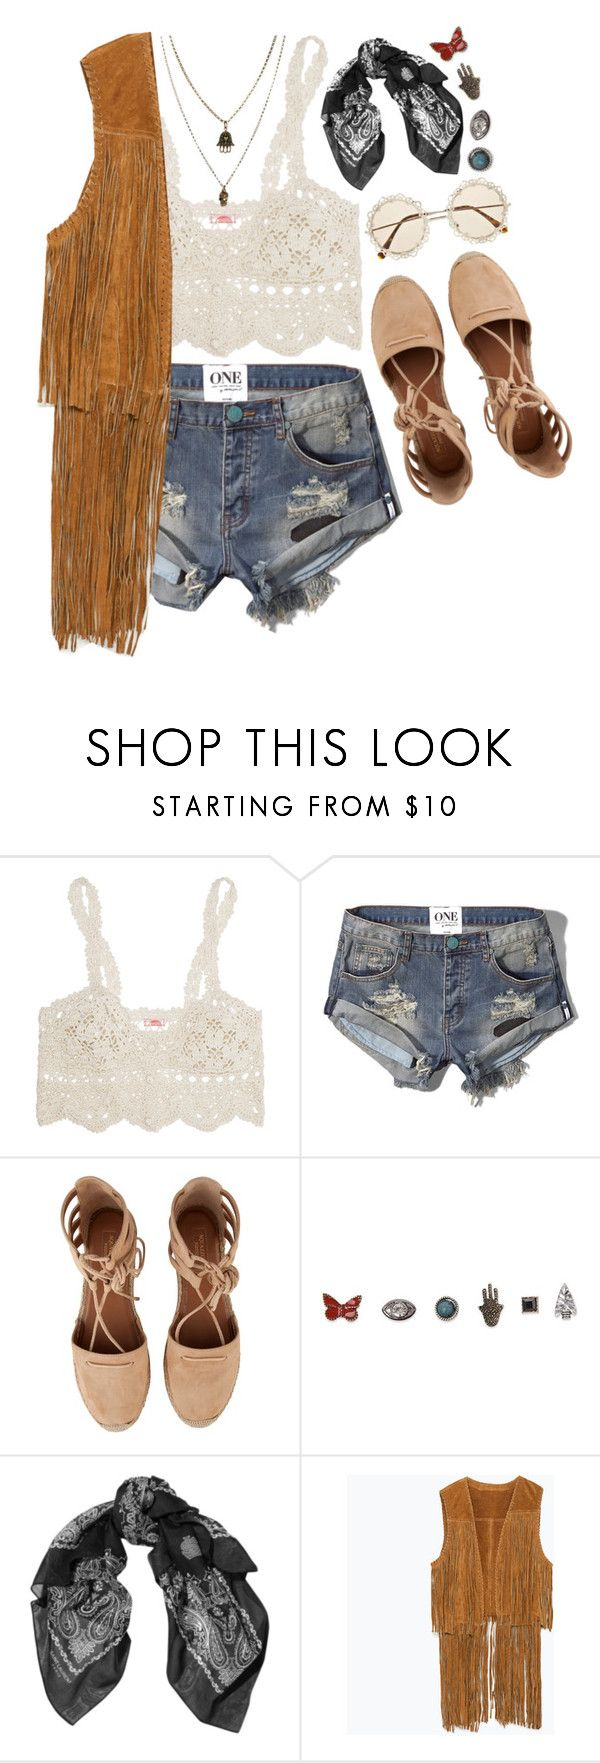 """""""Young Girls"""" by bellacharlie ❤ liked on Polyvore featuring Anna Kosturova, Abercrombie & Fitch, Aquazzura, With Love From CA, Yves Saint Laurent, Zara and Jamie Jewellery"""